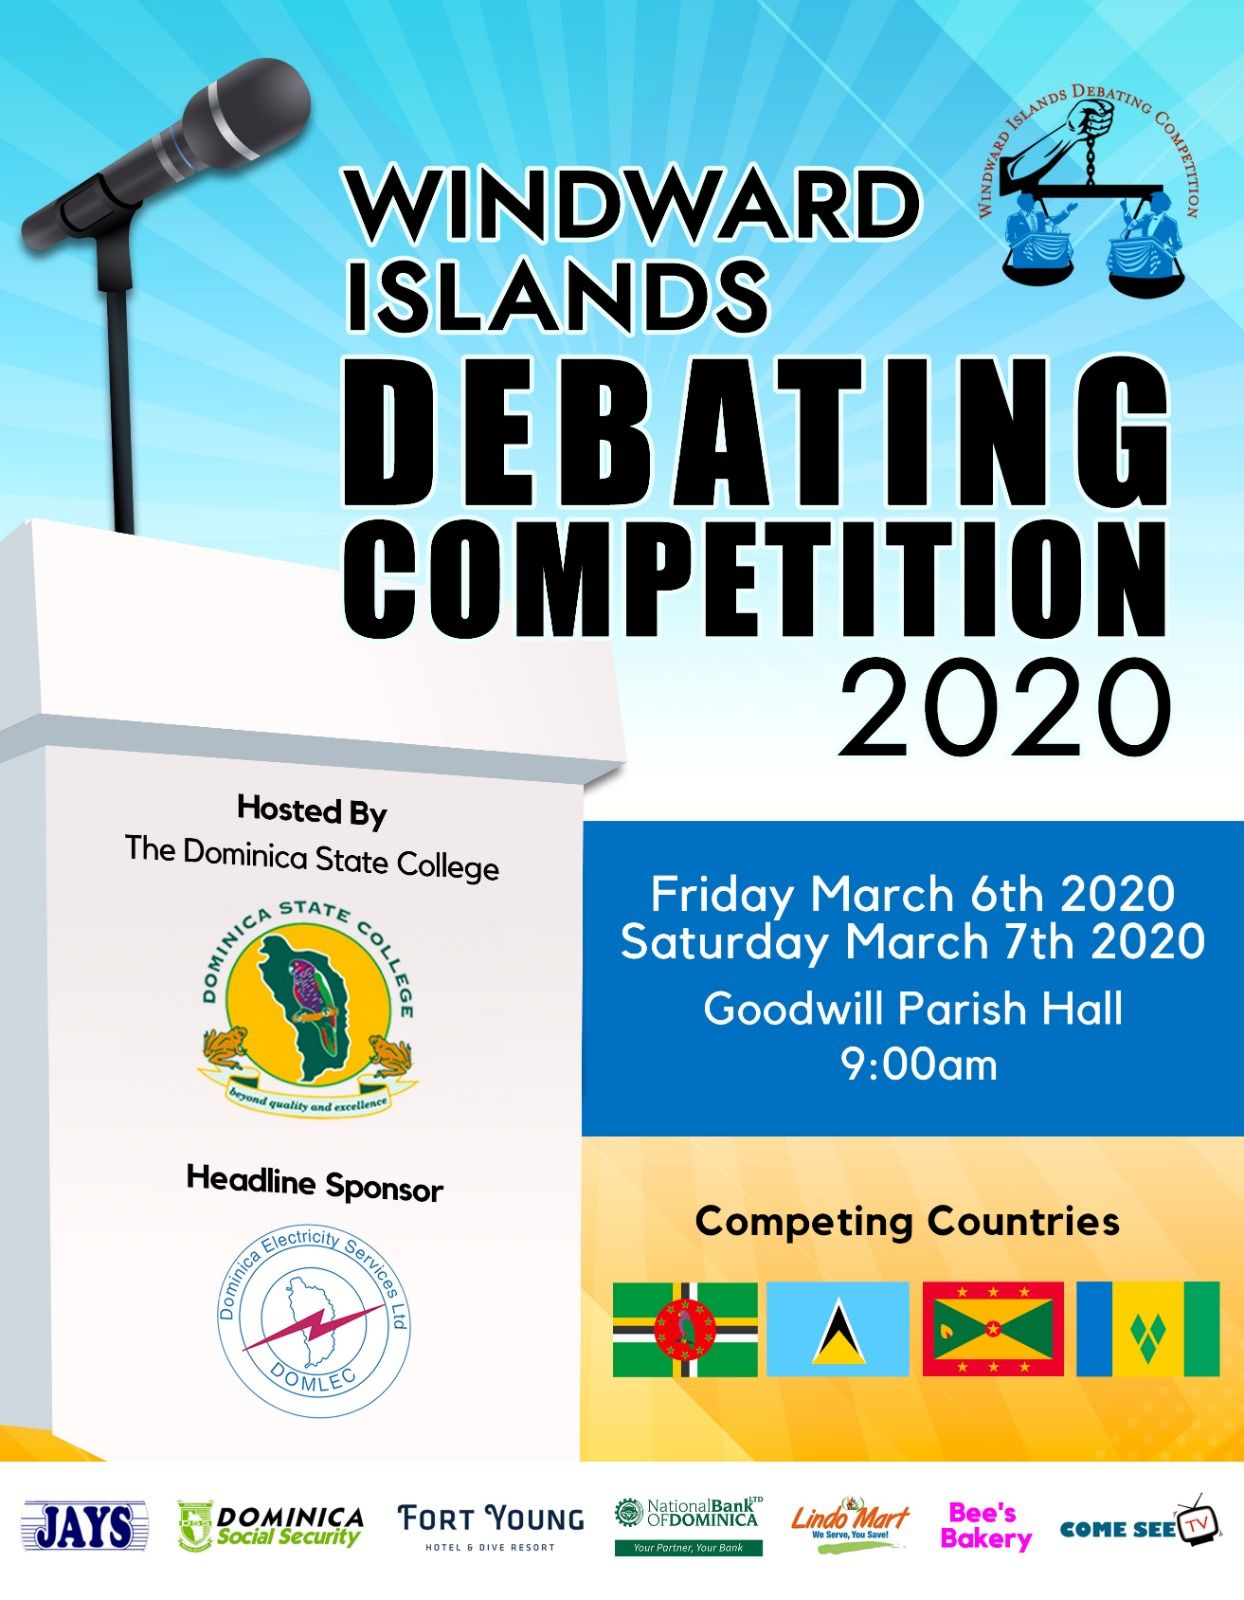 Windward Islands Debating Competition 2020